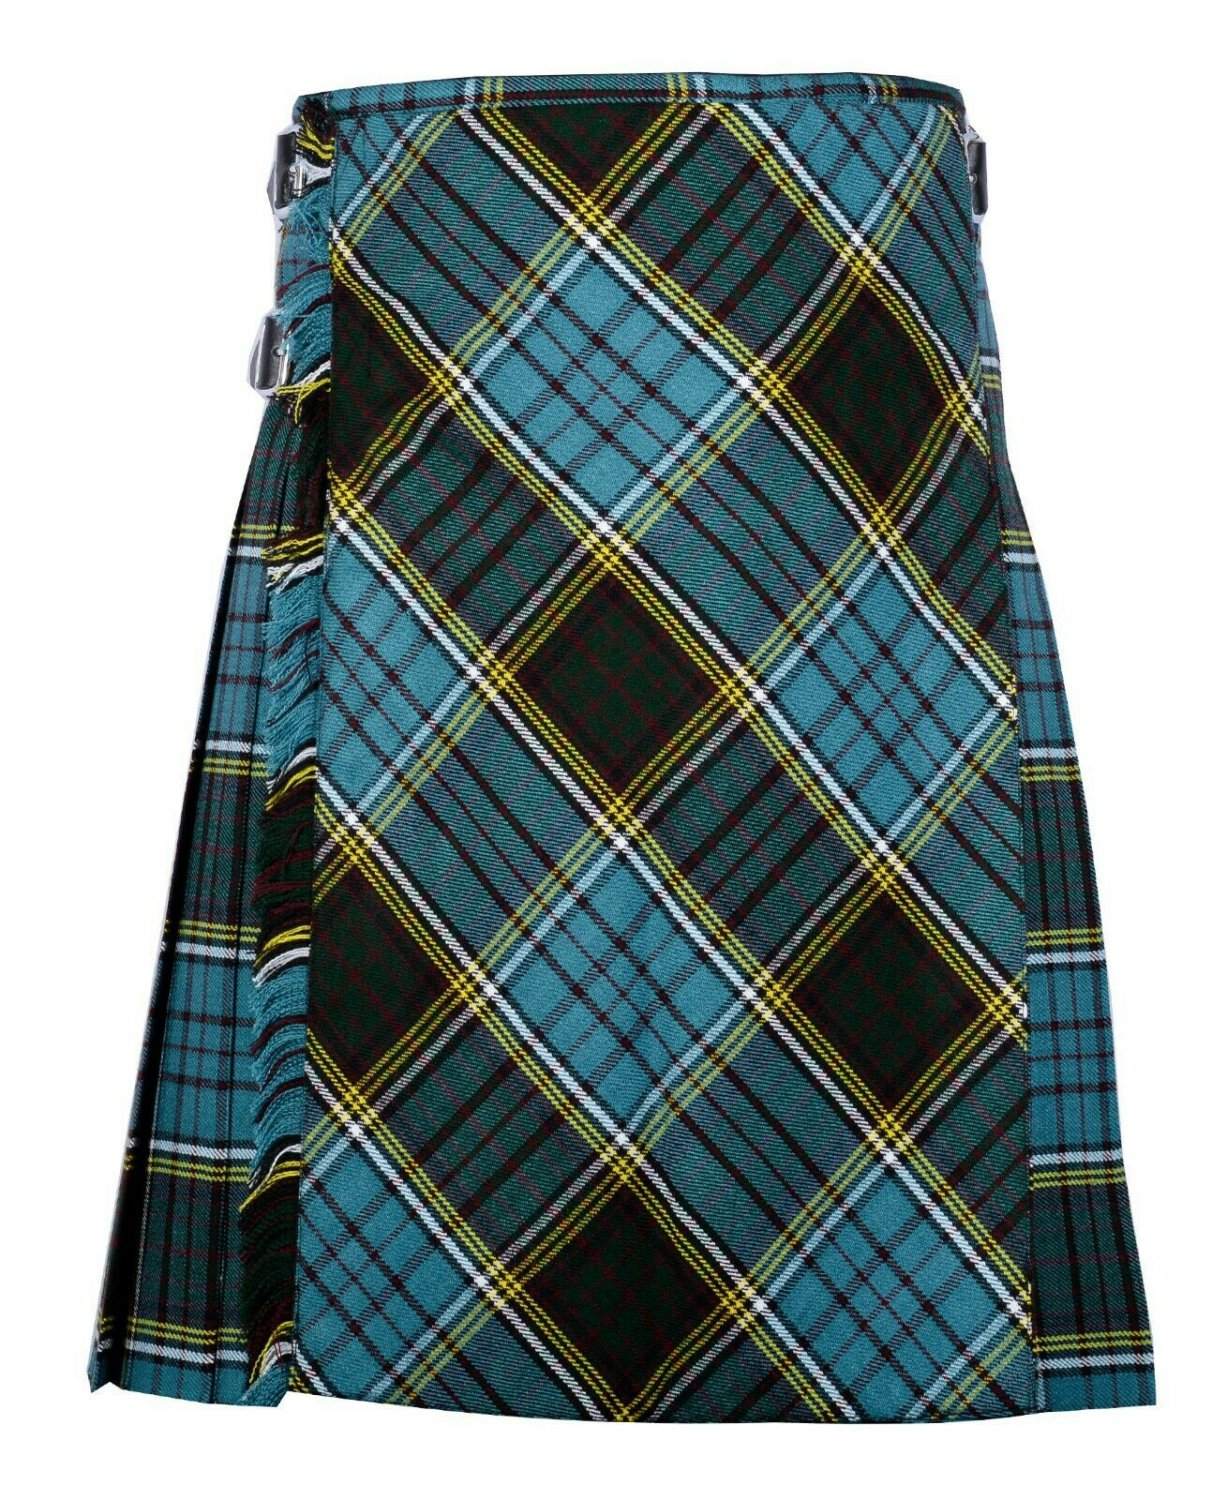 46 Size Bias Apron Traditional 5 Yard Scottish Kilt for Men � Anderson Tartan